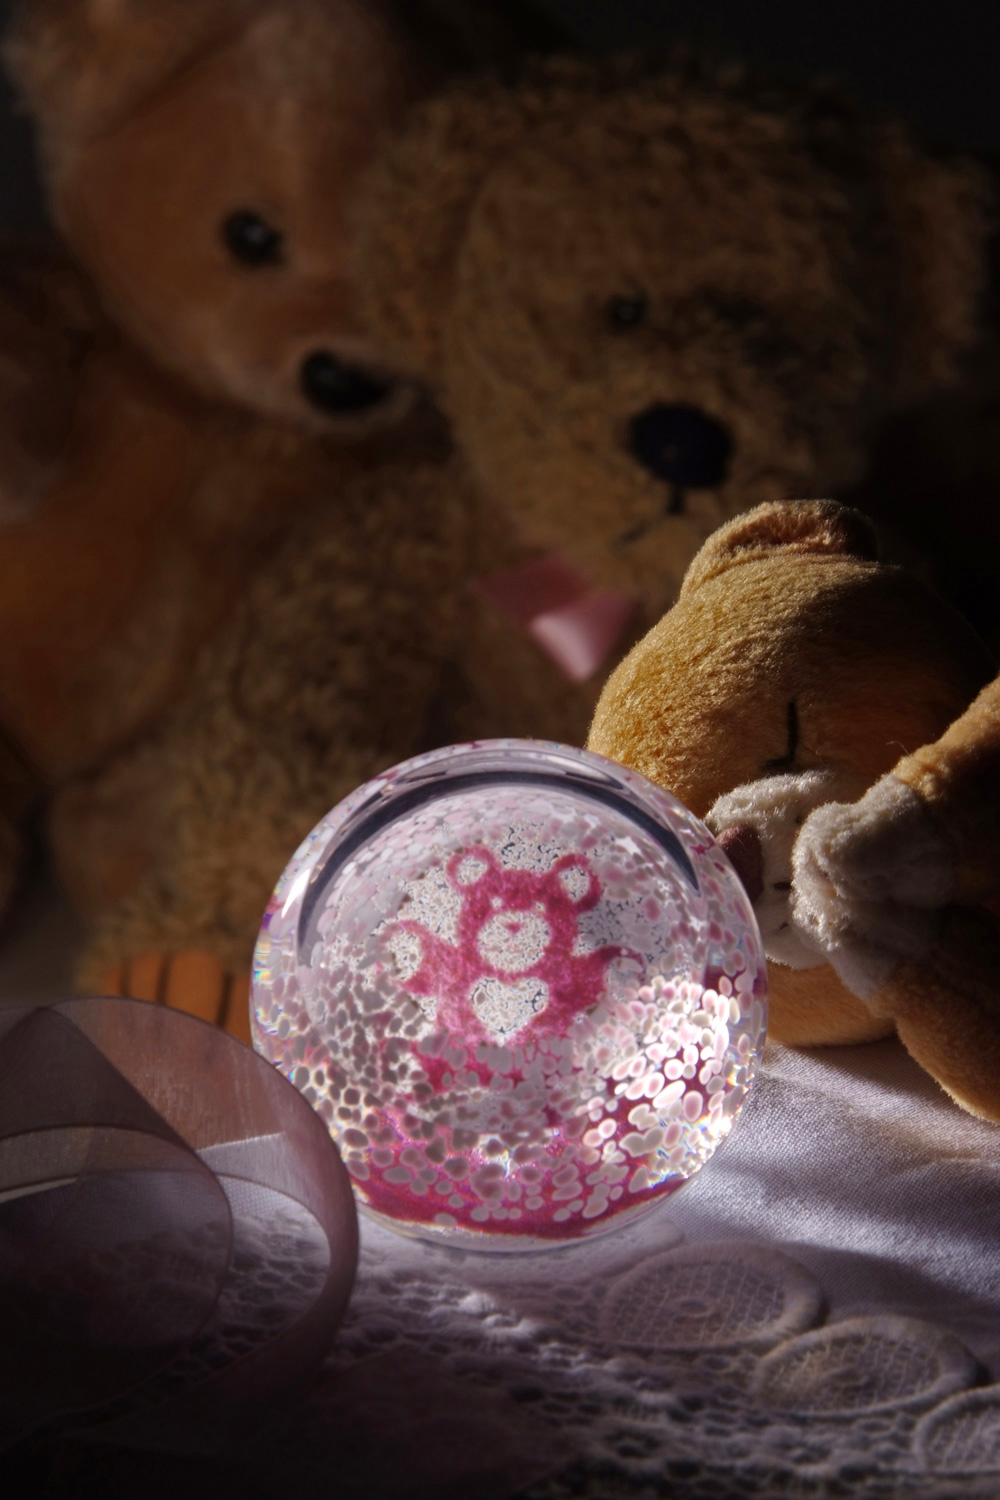 Glass Paperweight by Caithness depicting a pink baby bear